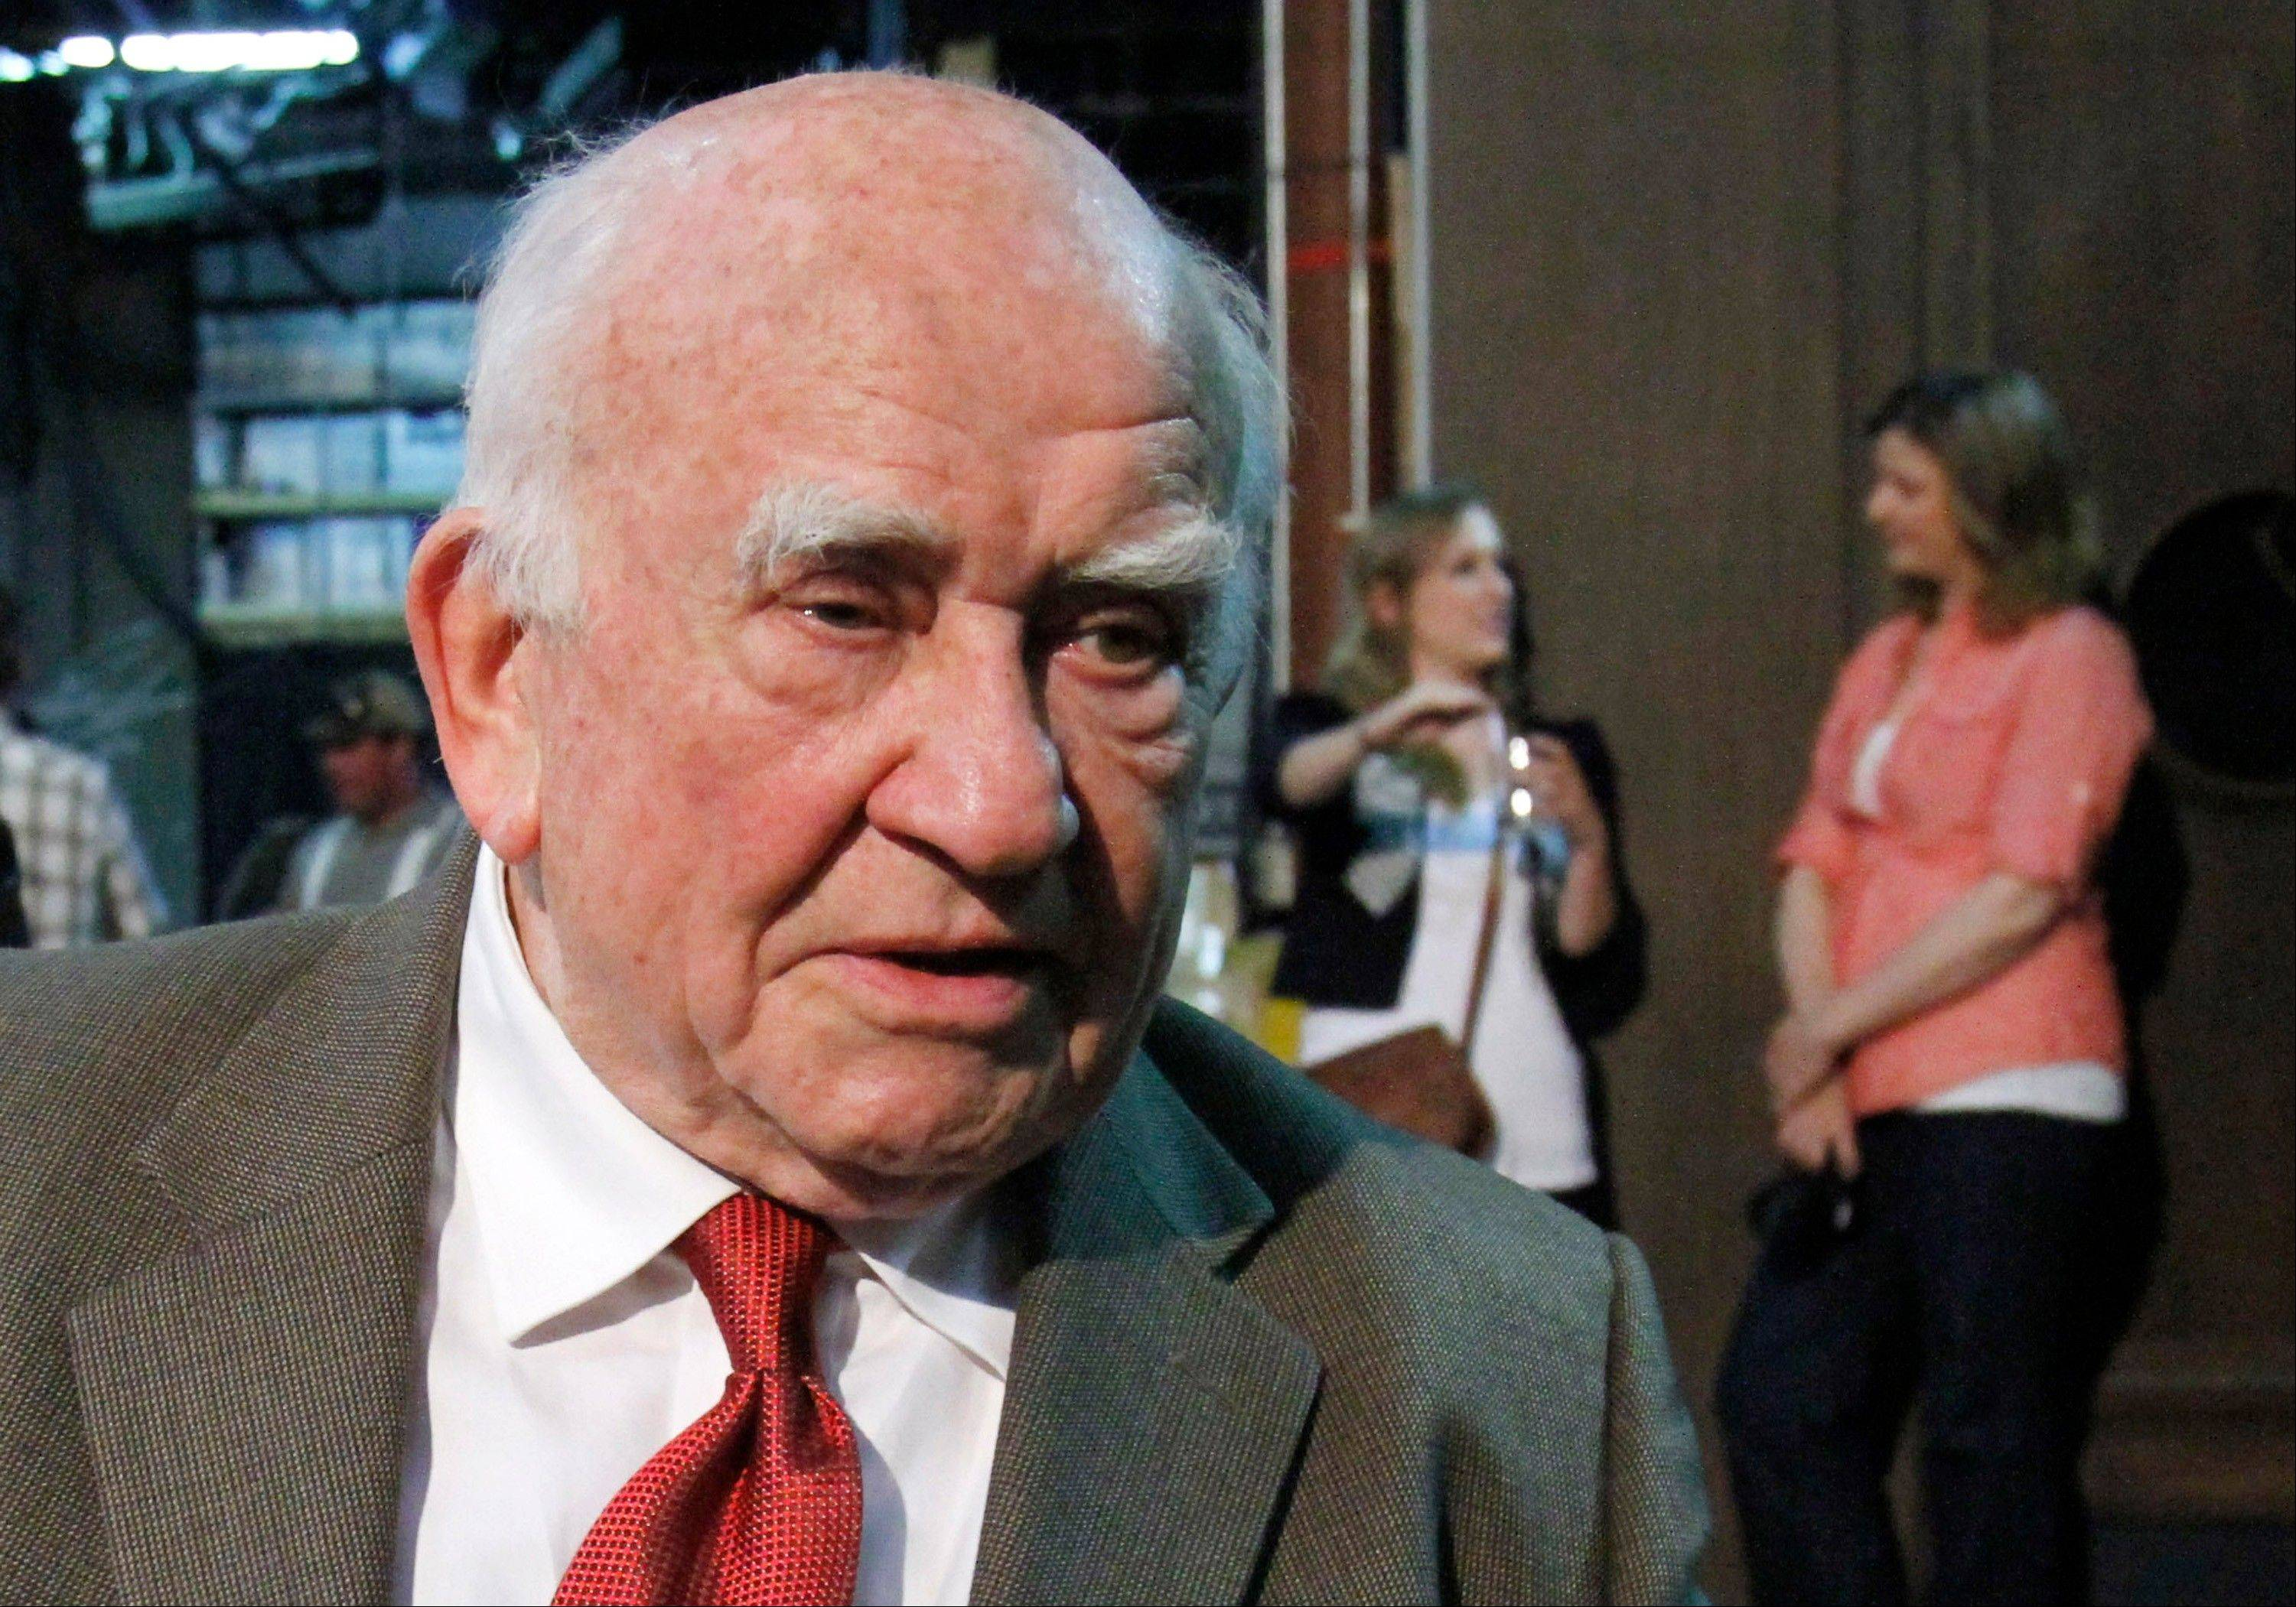 Actor and former Screen Actors Guild President Ed Asner has been hospitalized with exhaustion in Indiana.